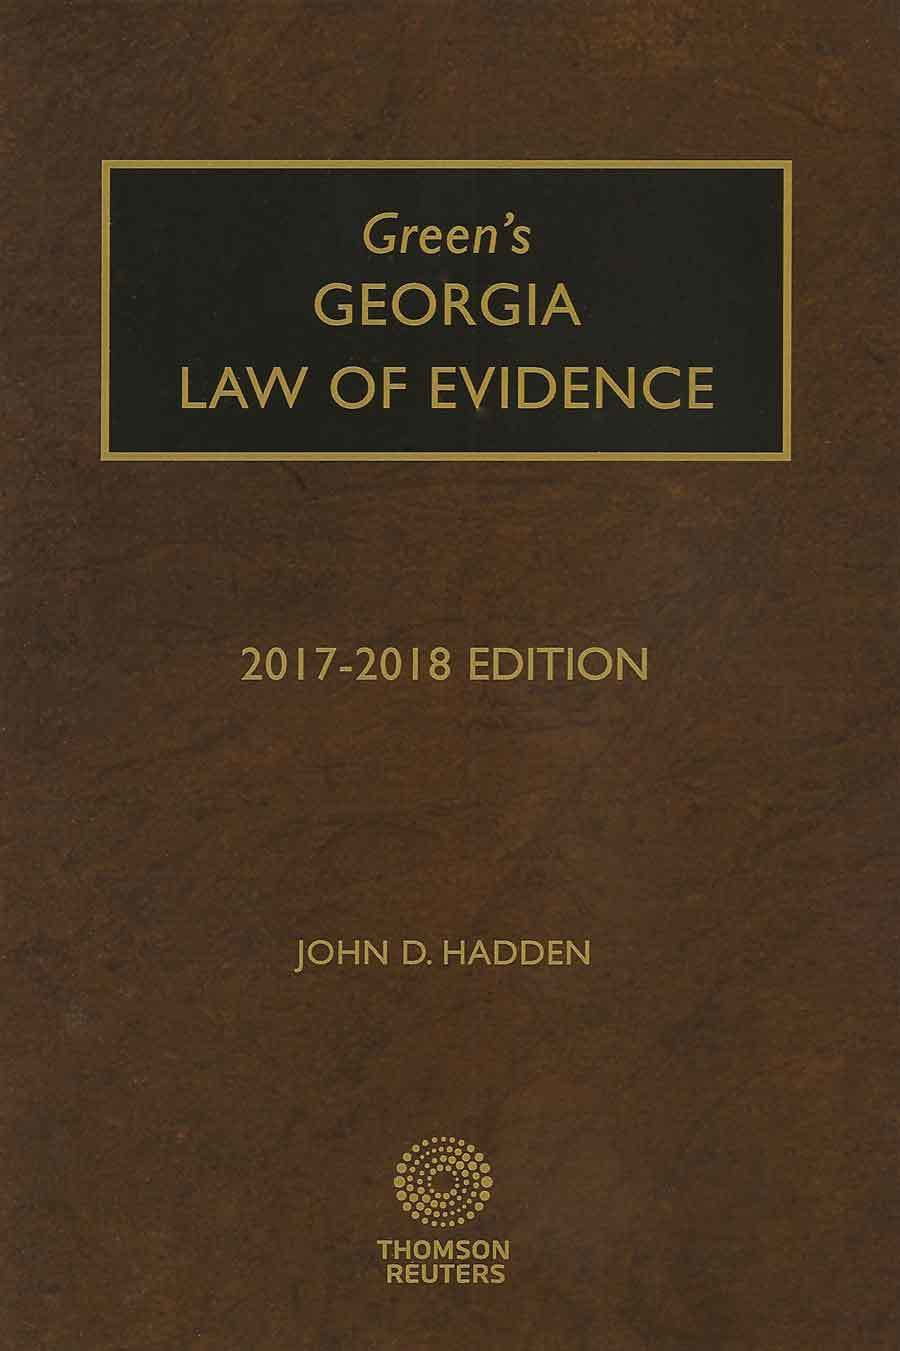 Cover of 2017-2018 edition of Georgia Law of Evidence by John Hadden